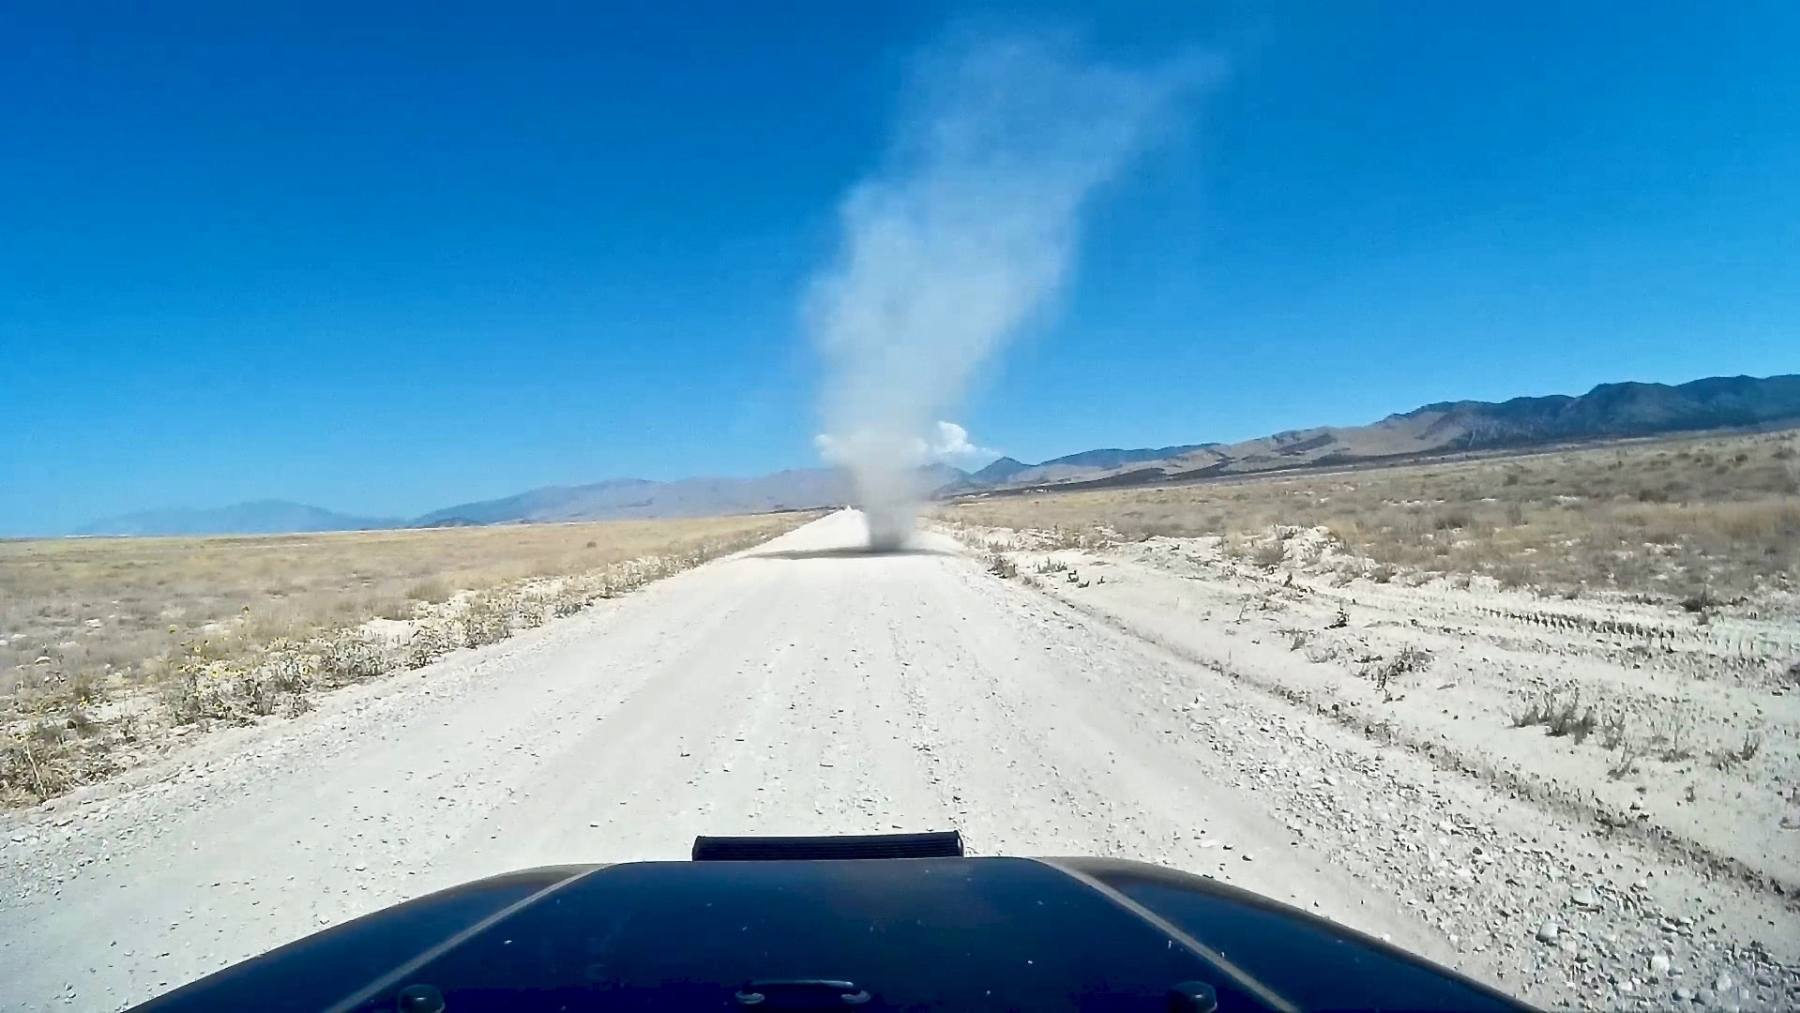 Dust Devil from the Dashcam